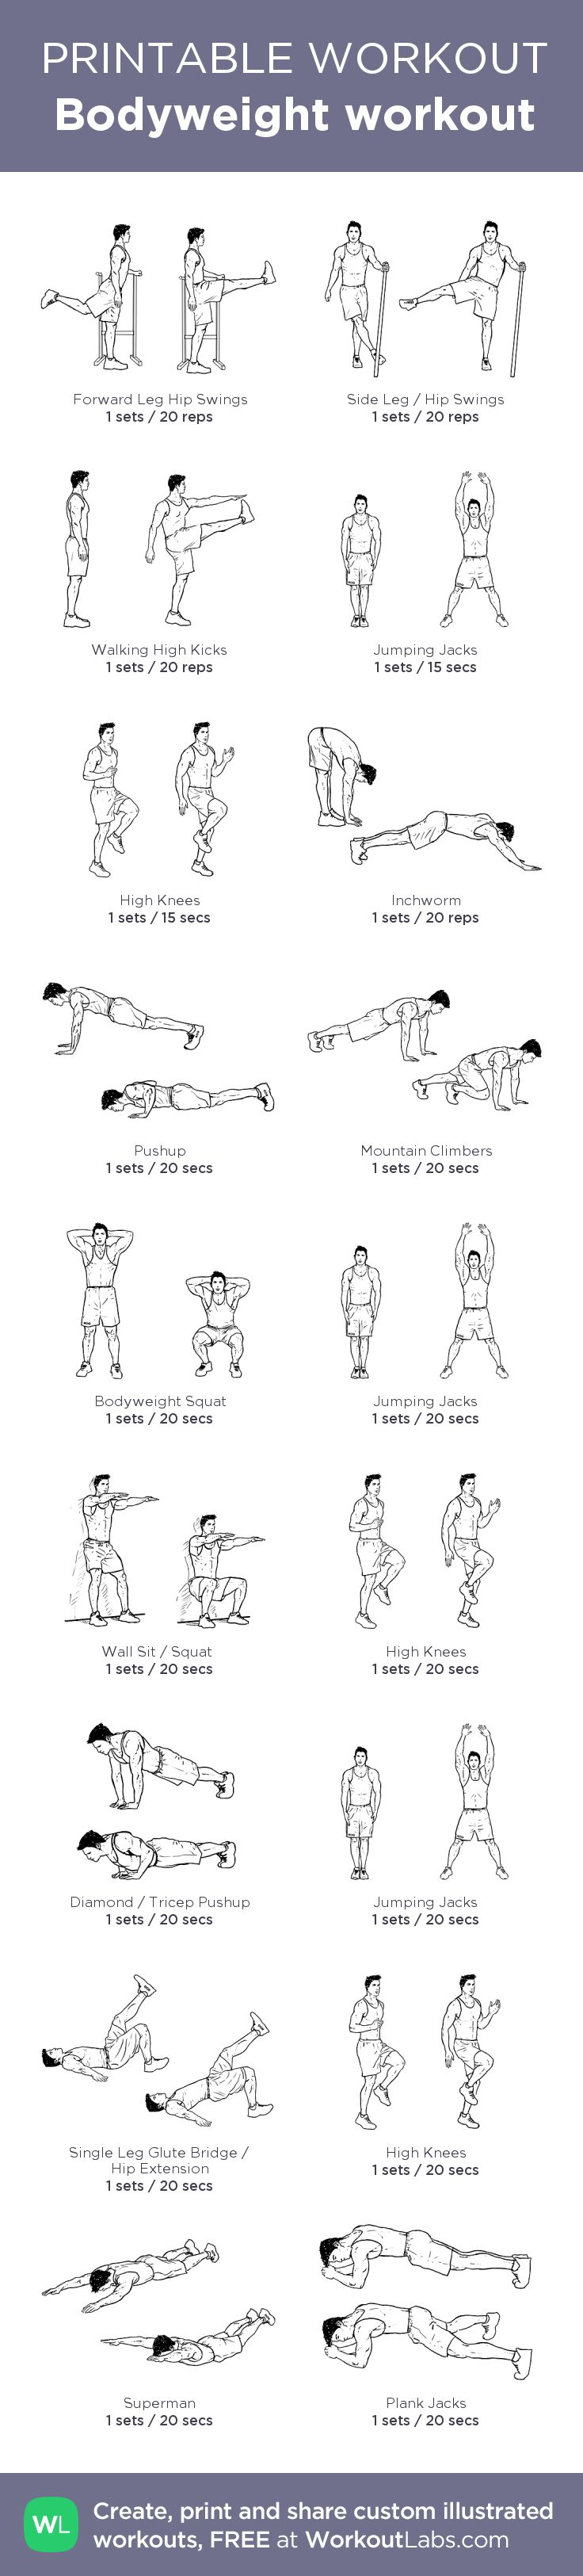 Bodyweight workout:my custom printable workout by @WorkoutLabs #workoutlabs #customworkout